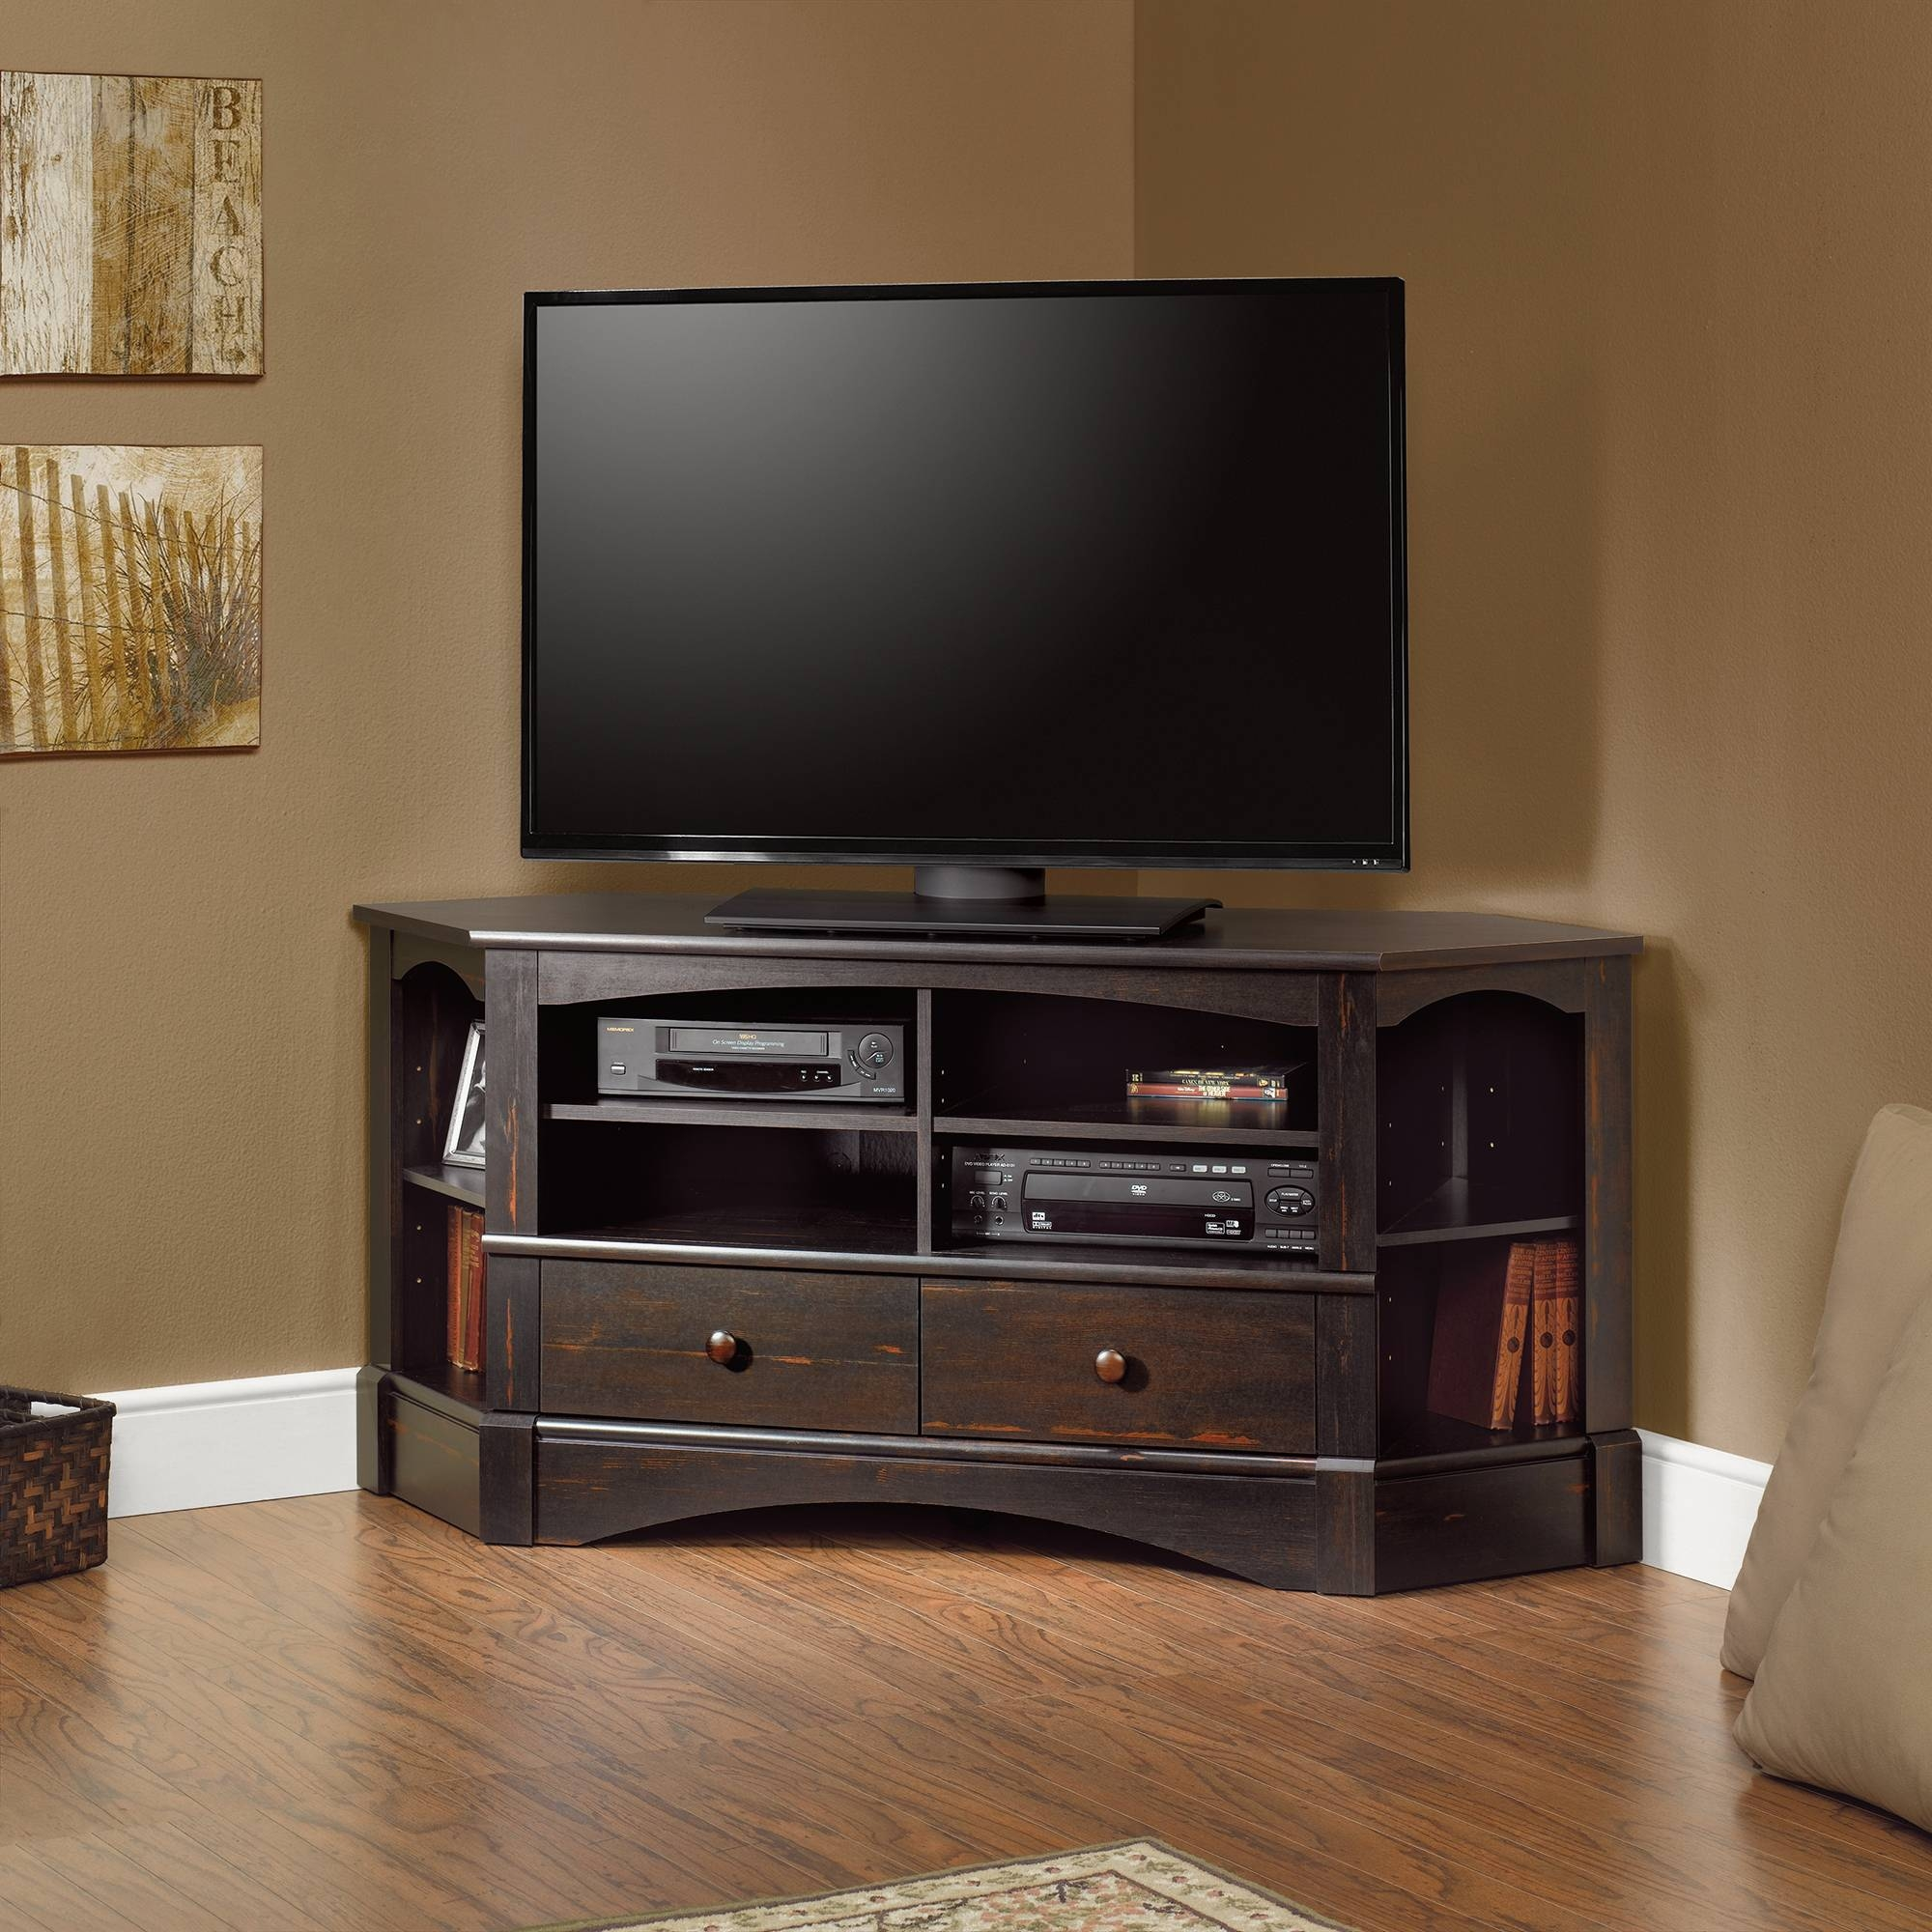 Harbor View | Corner Entertainment Credenza | 402902 | Sauder For Corner Tv Stands (View 6 of 15)